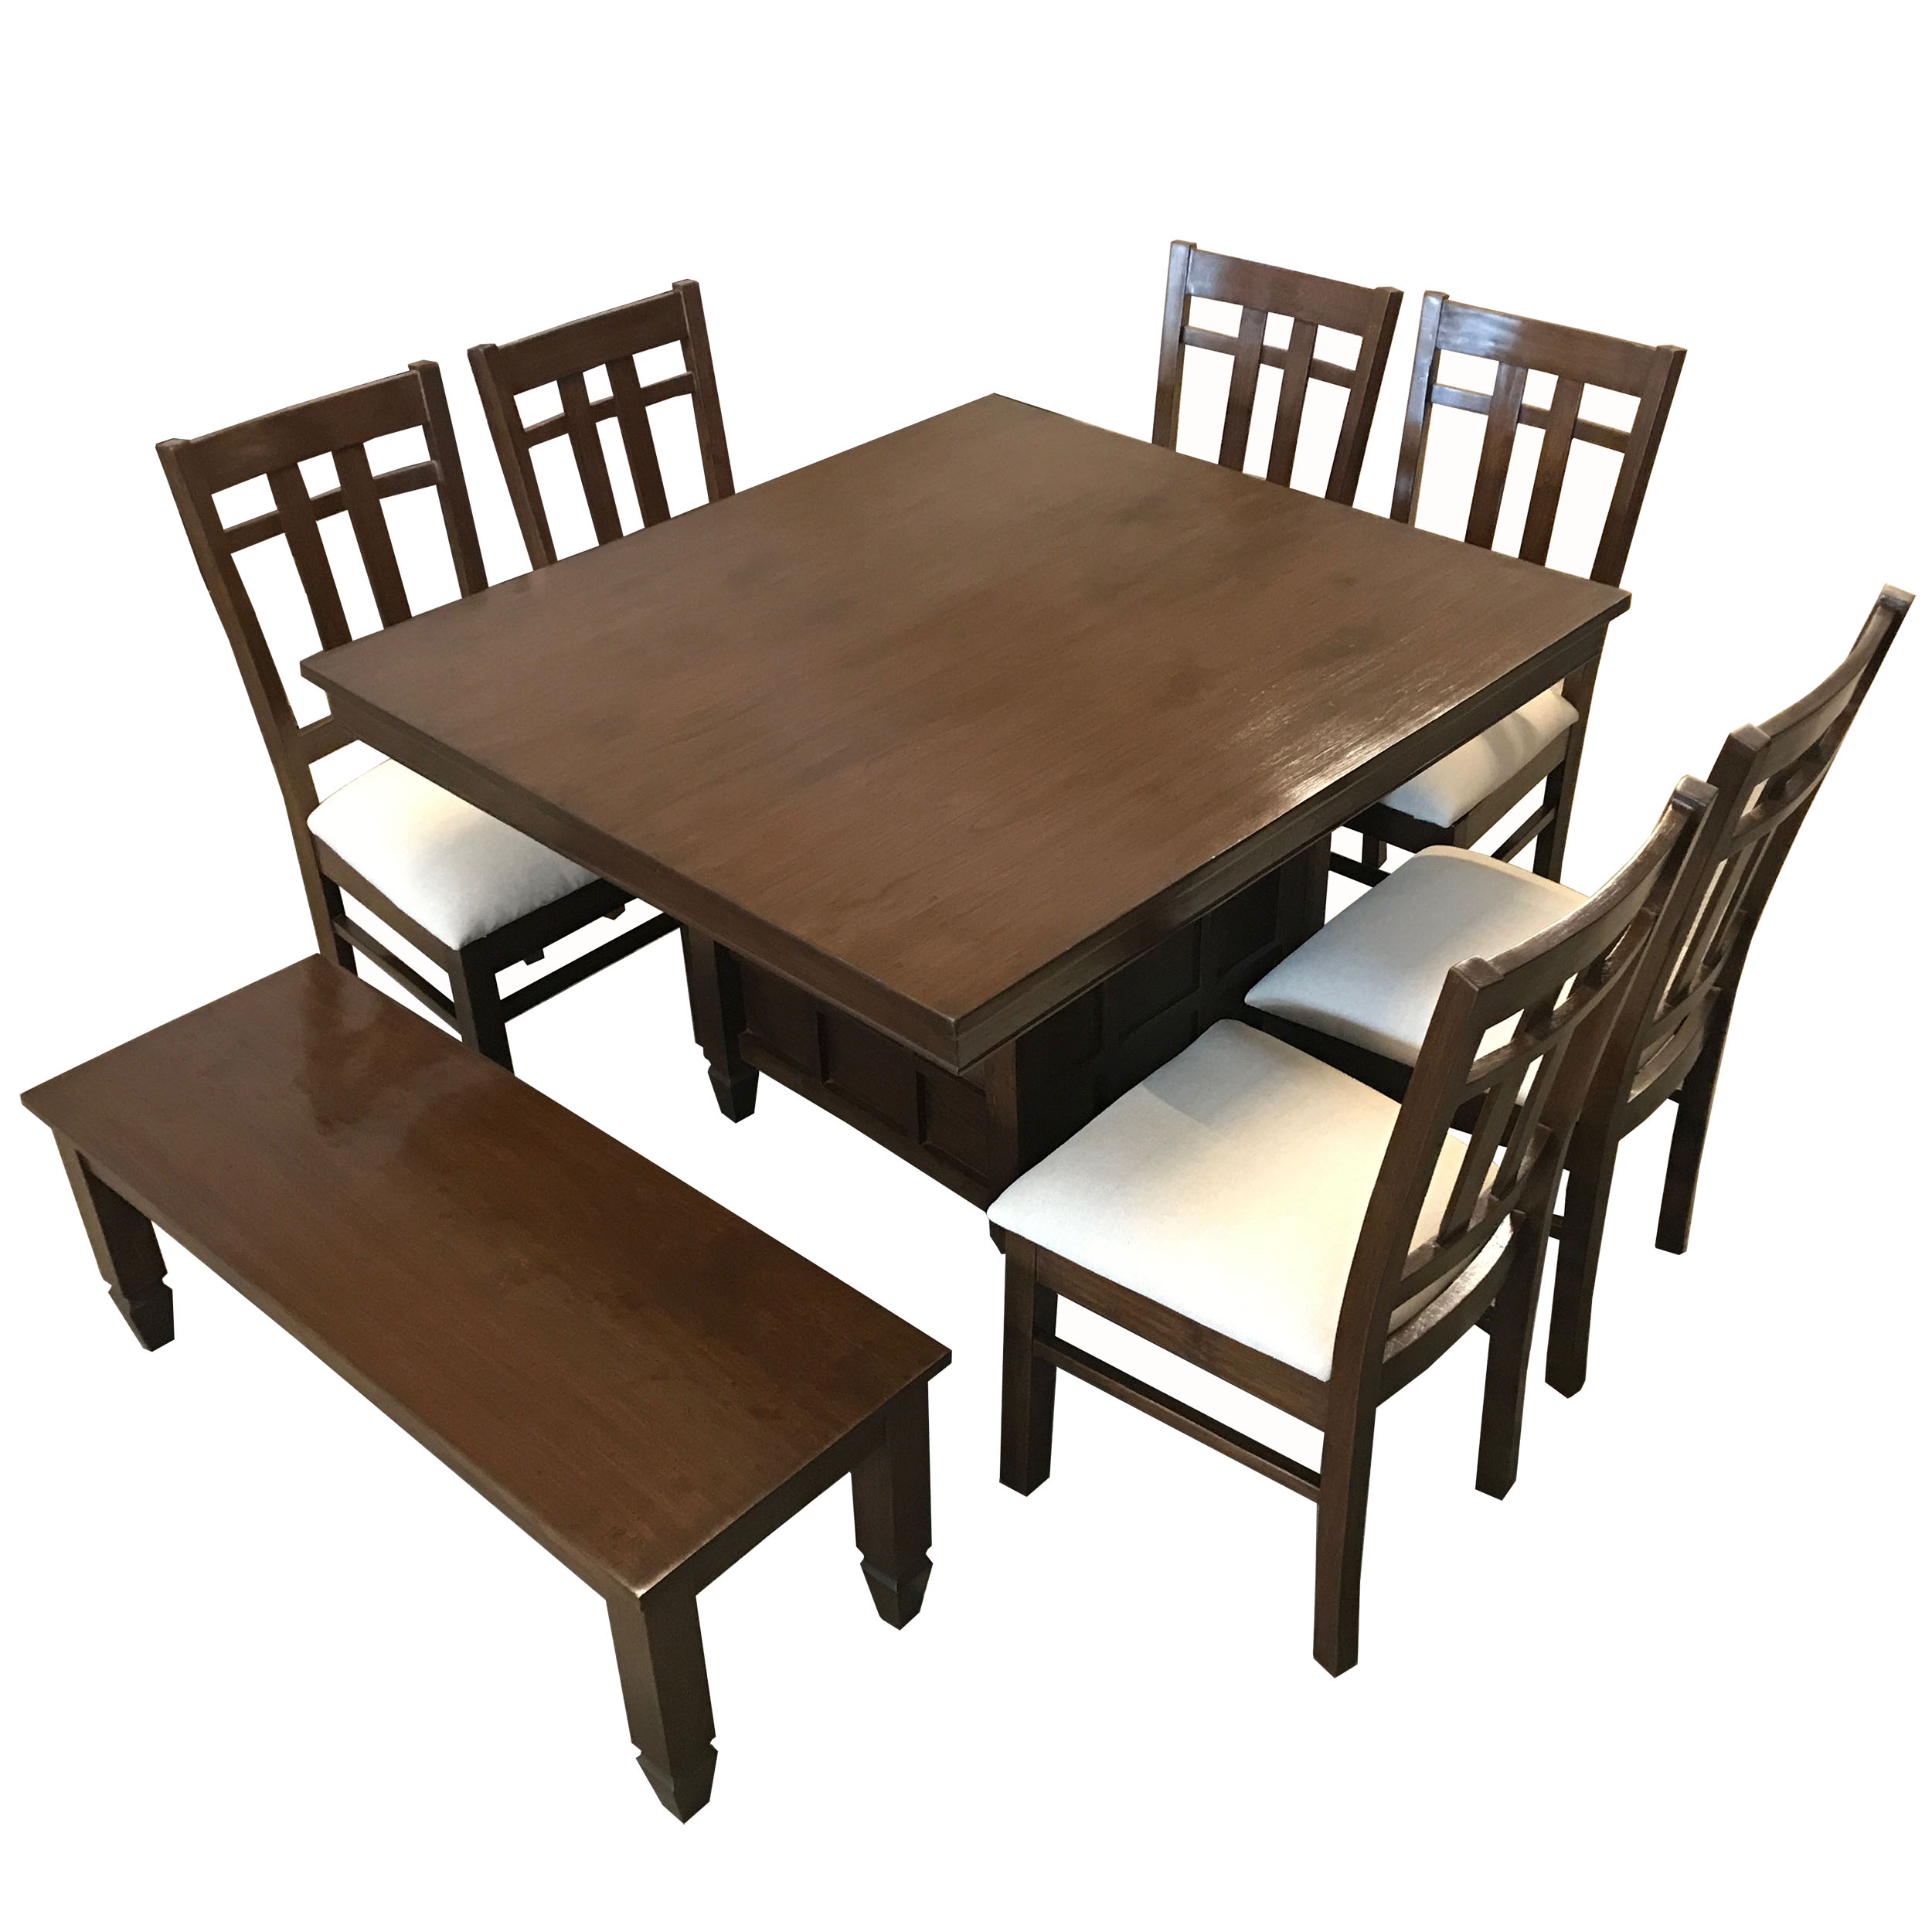 d715aecae TWD 102 FOLDING DINING SETS. ₹45